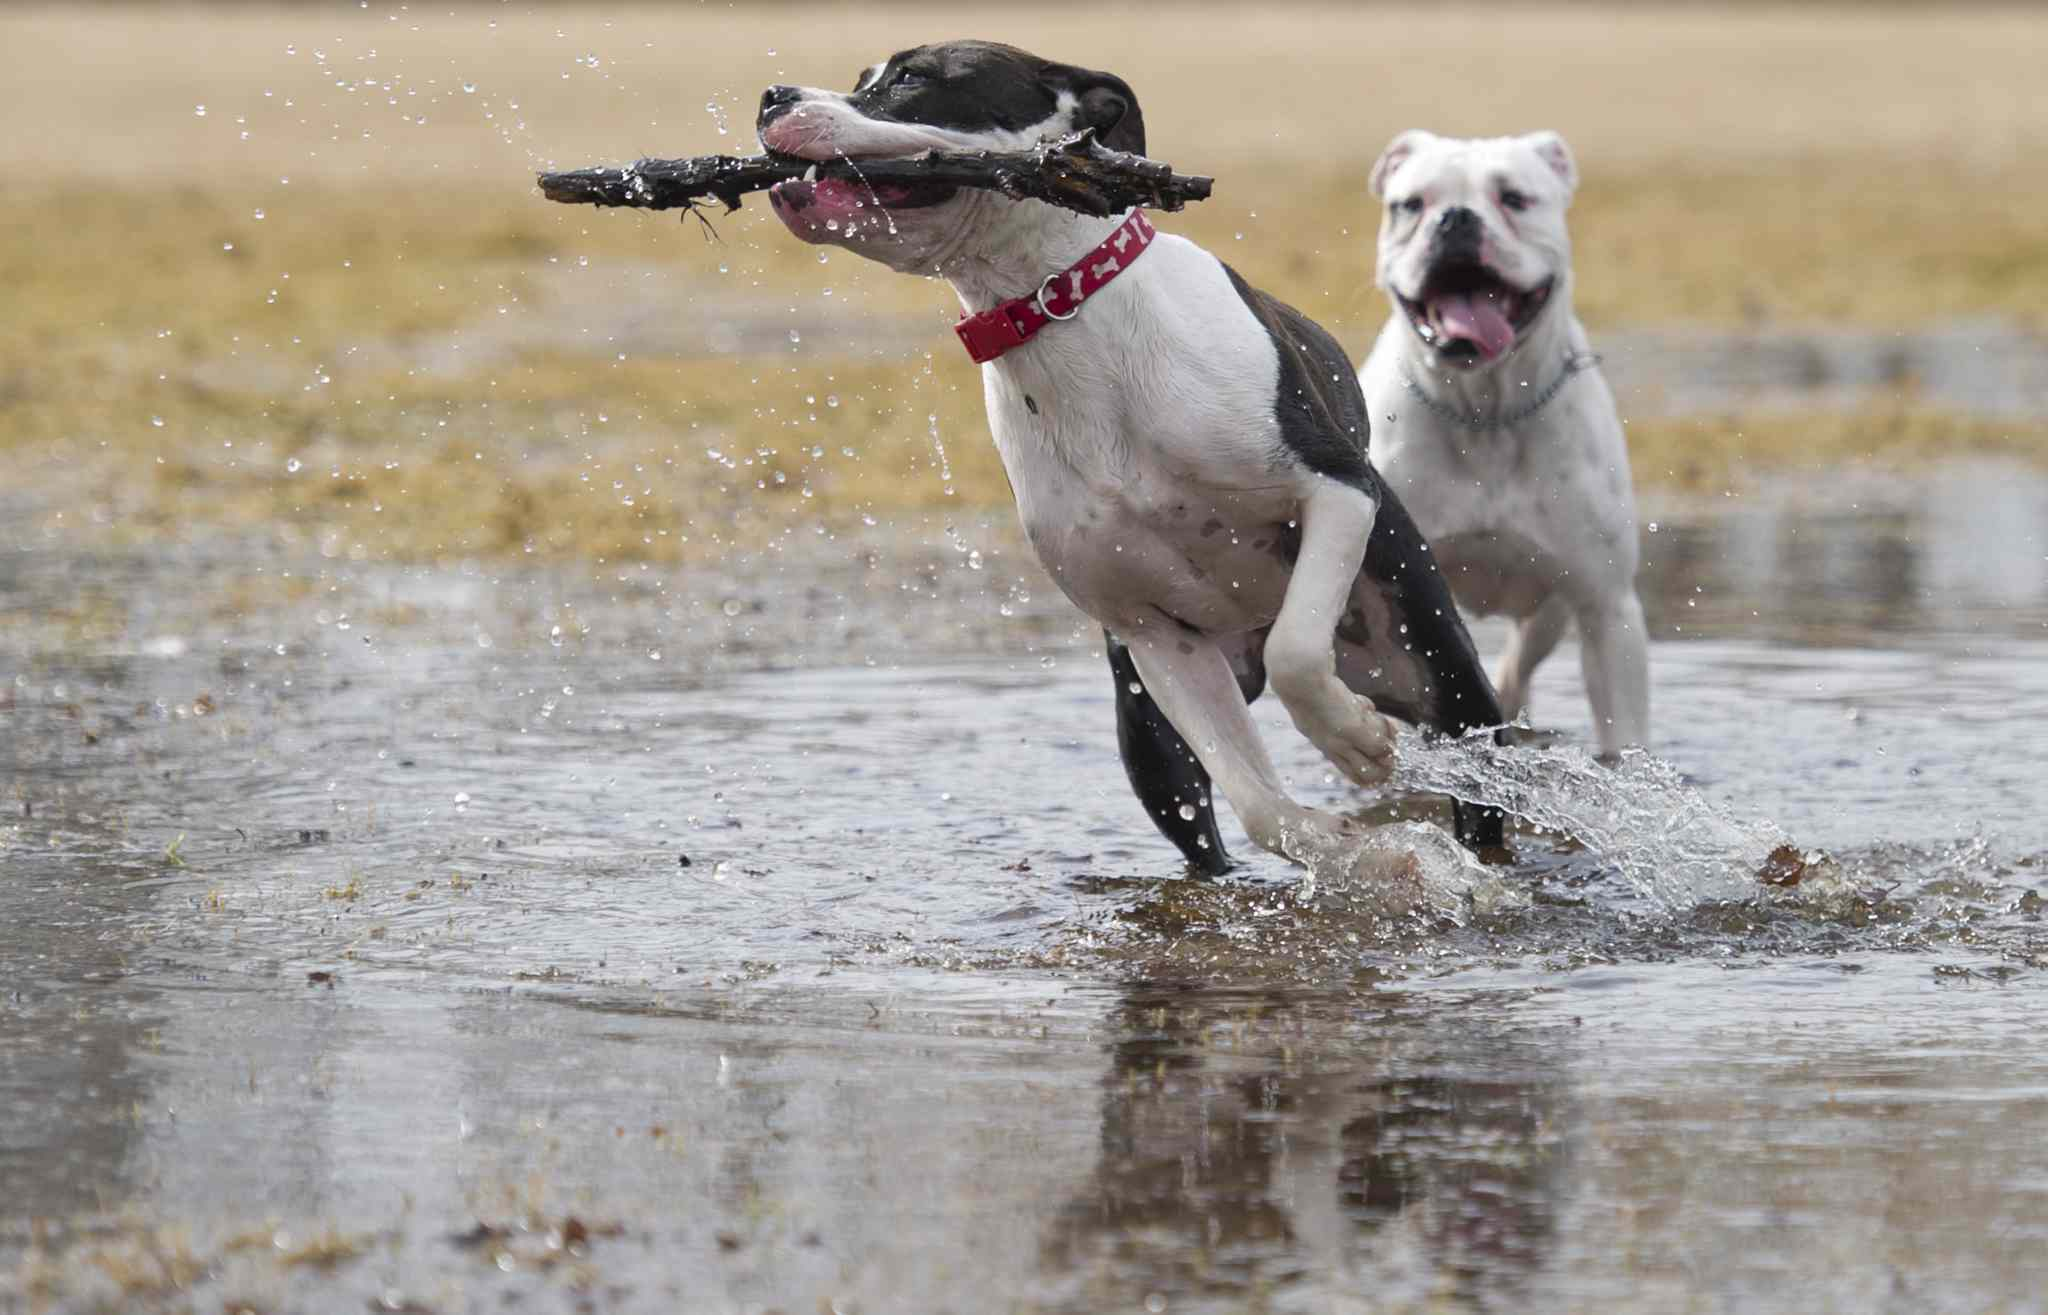 Pets enjoy splashing through springtime puddles at a dog park in Charleswood.